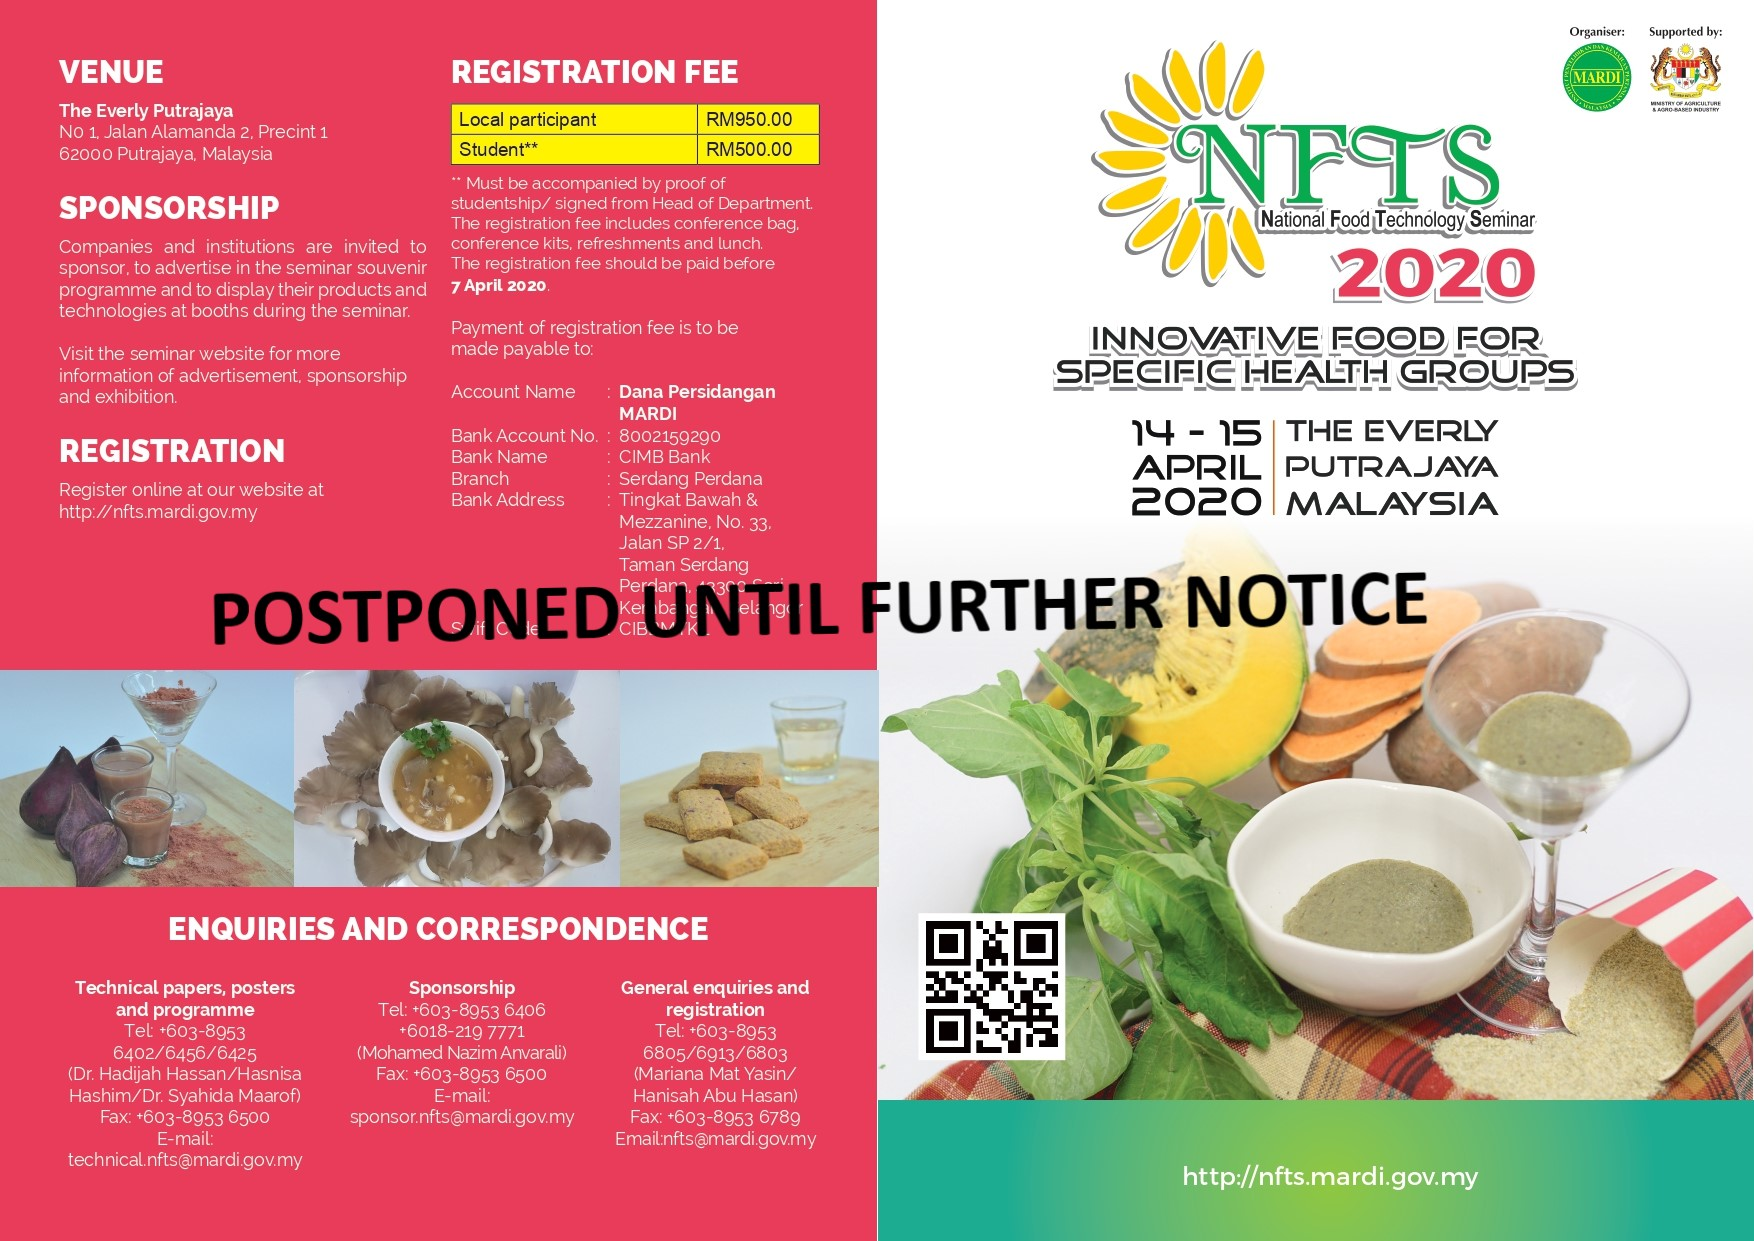 NATIONAL FOOD TECHNOLOGY SEMINAR 2020,INNOVATIVE FOOD FOR SPECIFIC HEALTH GROUPS, 14-15 APRIL 202